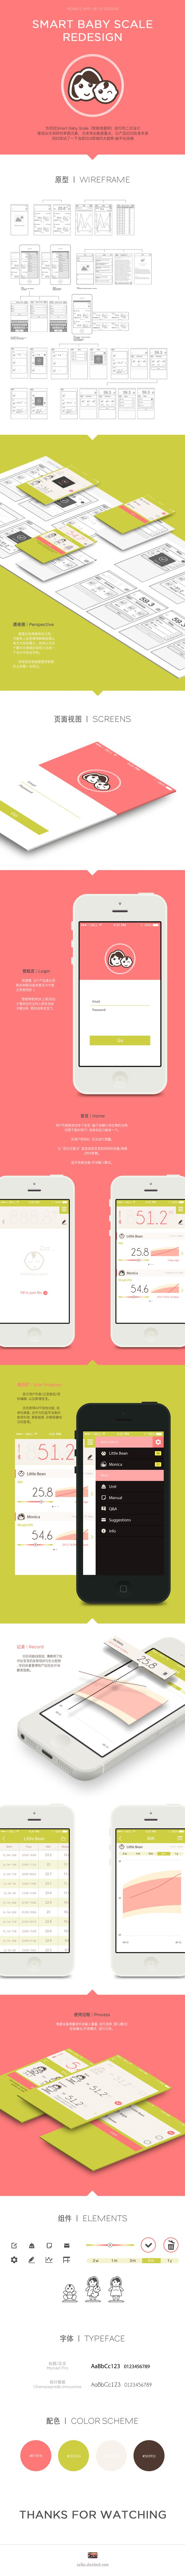 SmartBabyScale Redesign by saika , via Behance